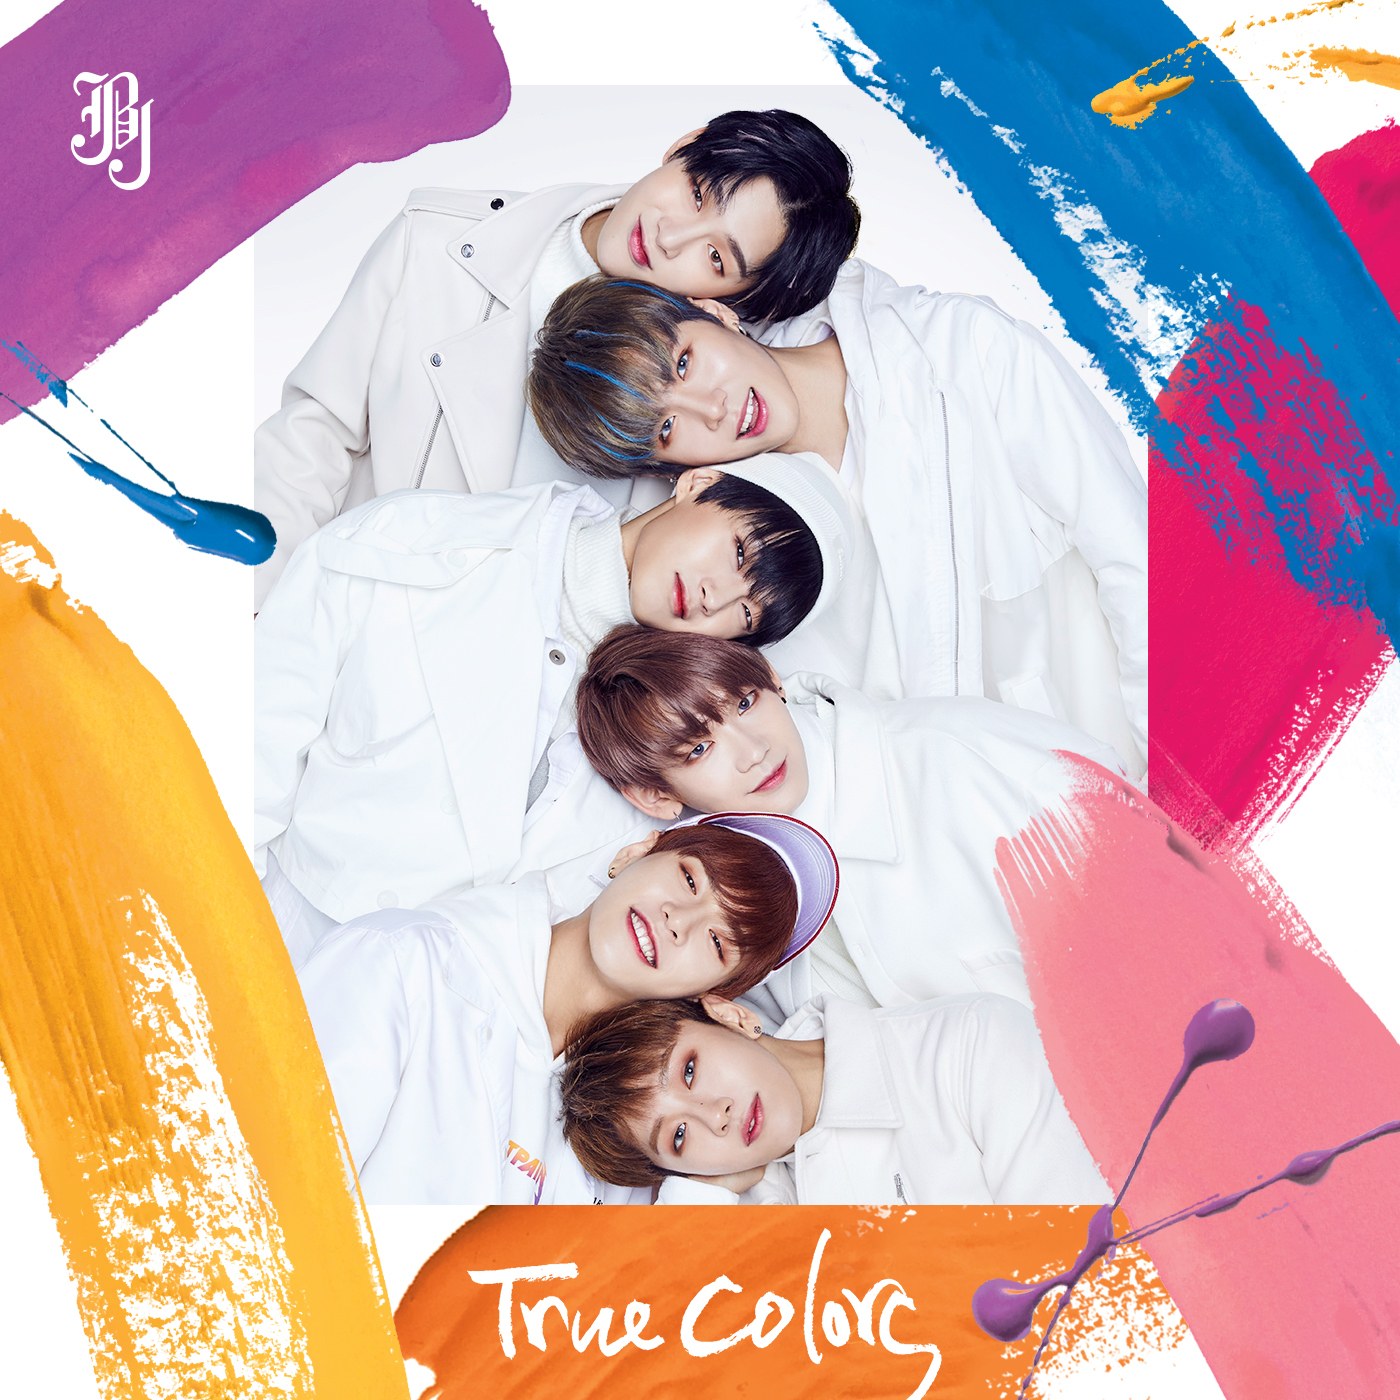 True Colors (JBJ)